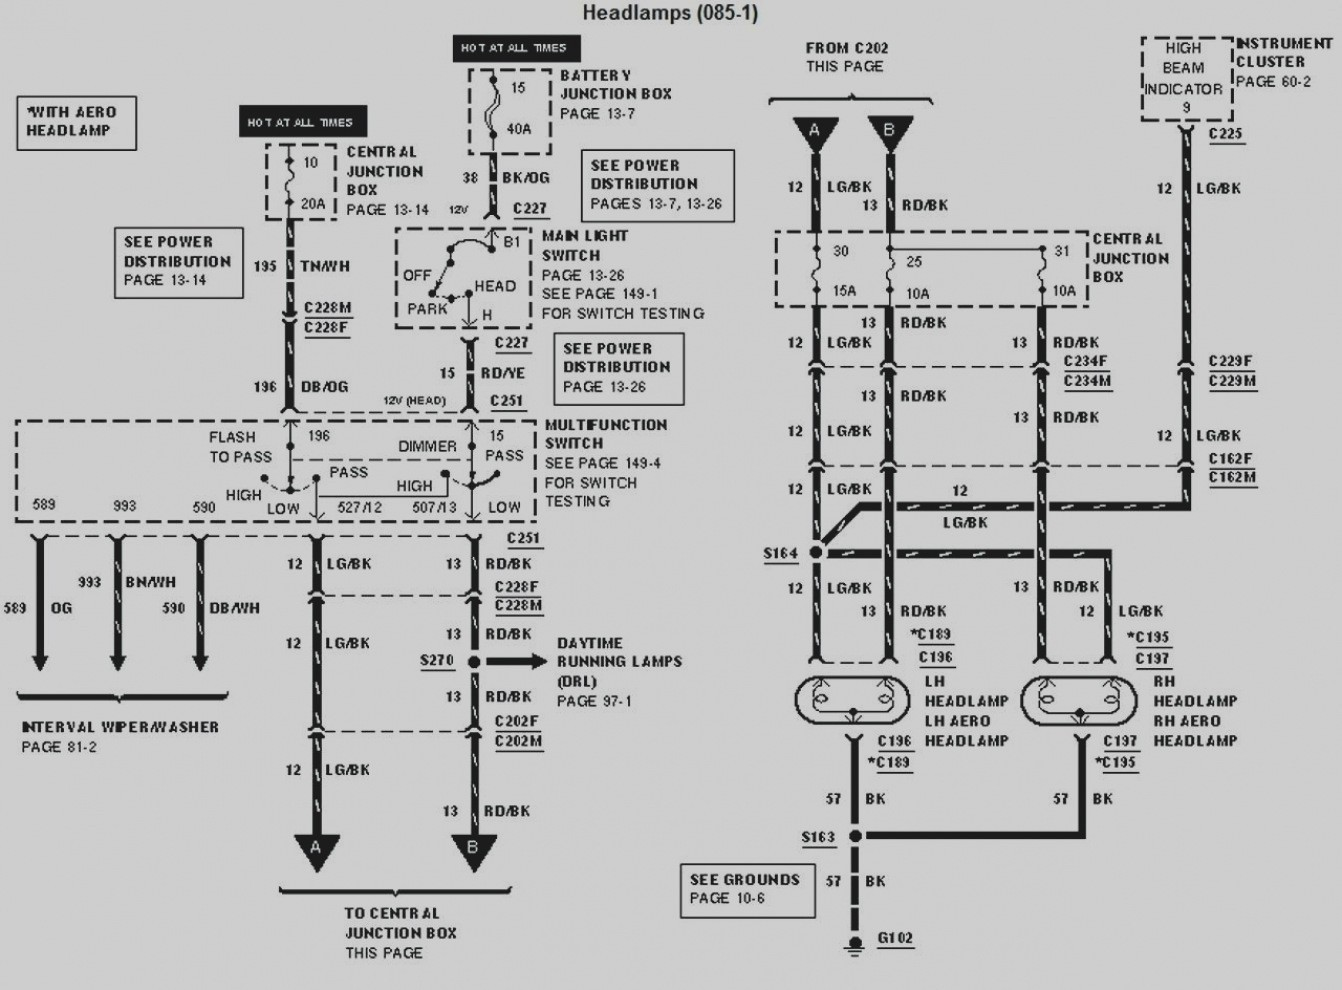 95 ford f53 wiring diagram - data wiring diagram forecast-agree -  forecast-agree.vivarelliauto.it  vivarelliauto.it